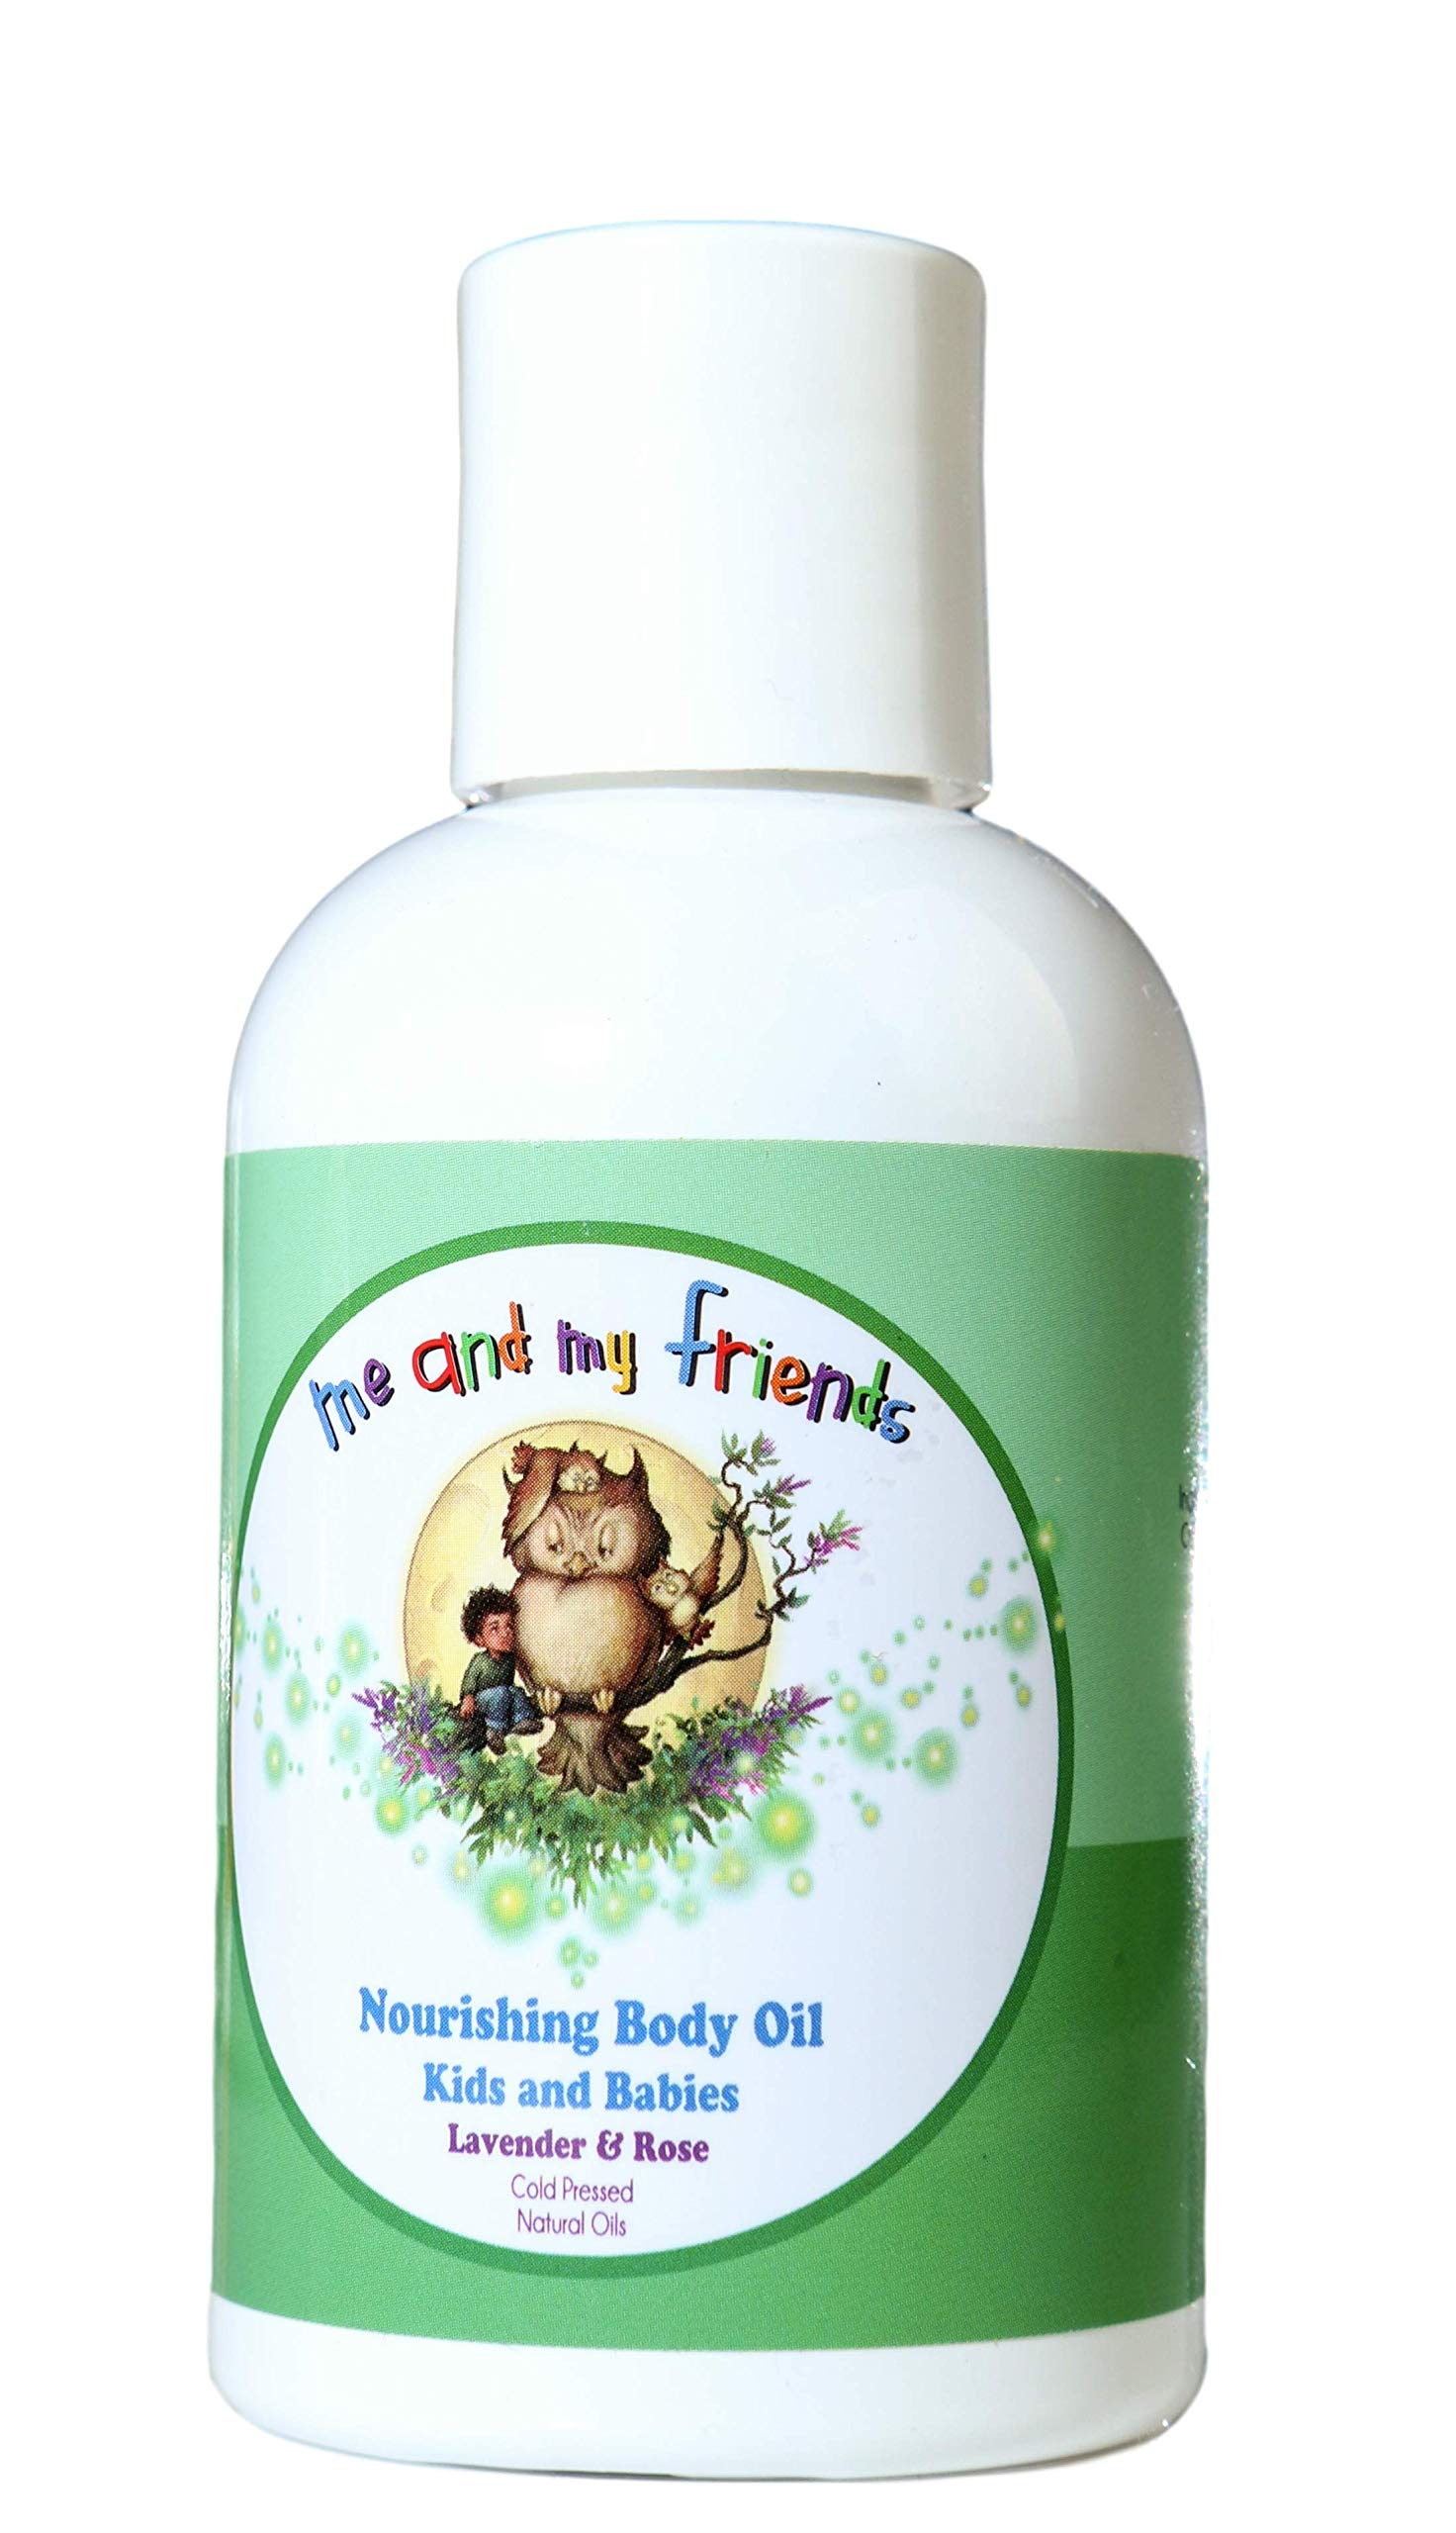 Nourishing Body Oil with Lavender & Rose for Kids and Babies (4oz) by N Nabila K